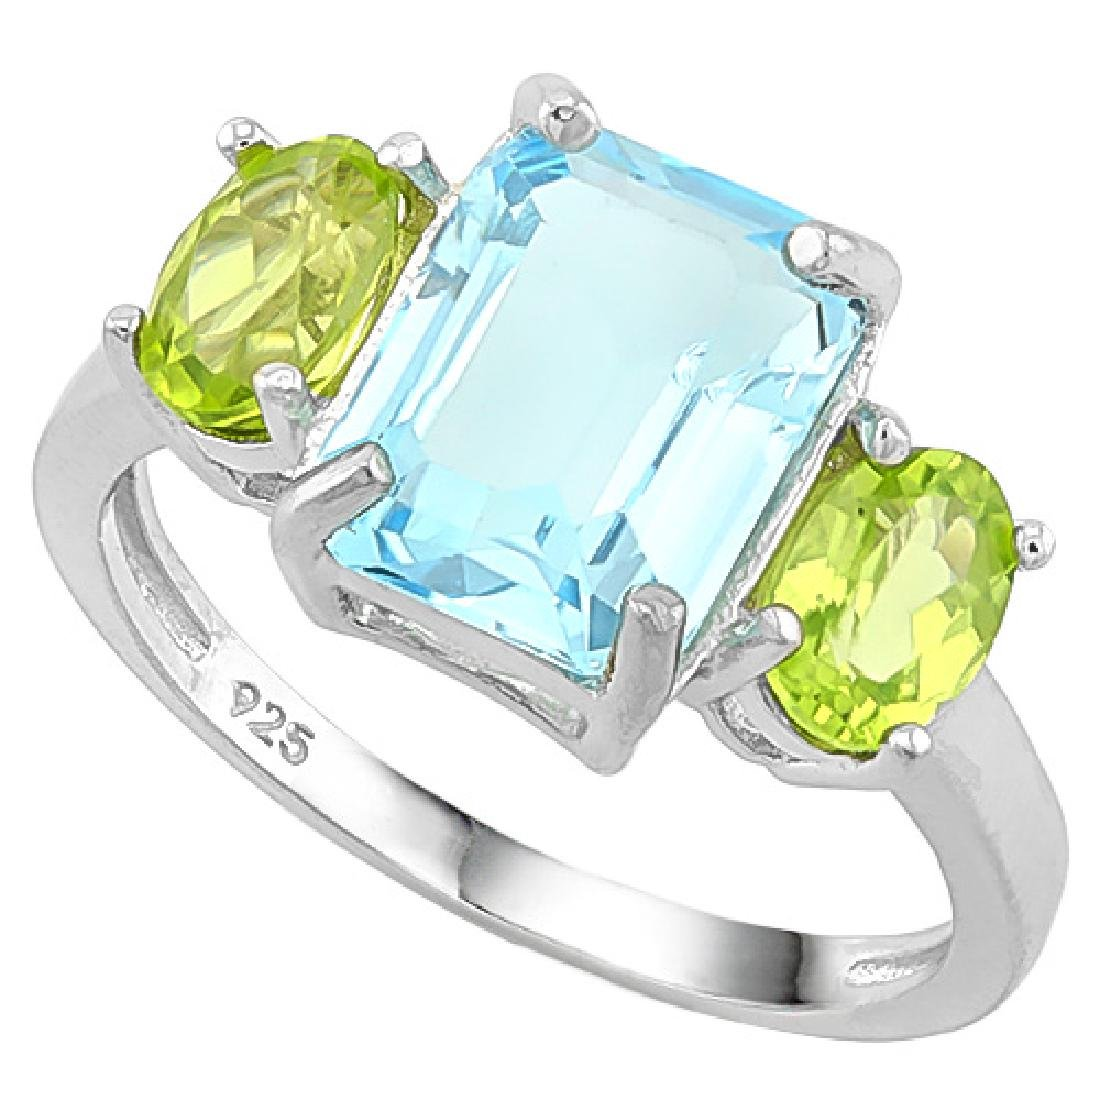 AMAZING BABY BLUE TOPAZ/PERIDOT BAGUETTE RING